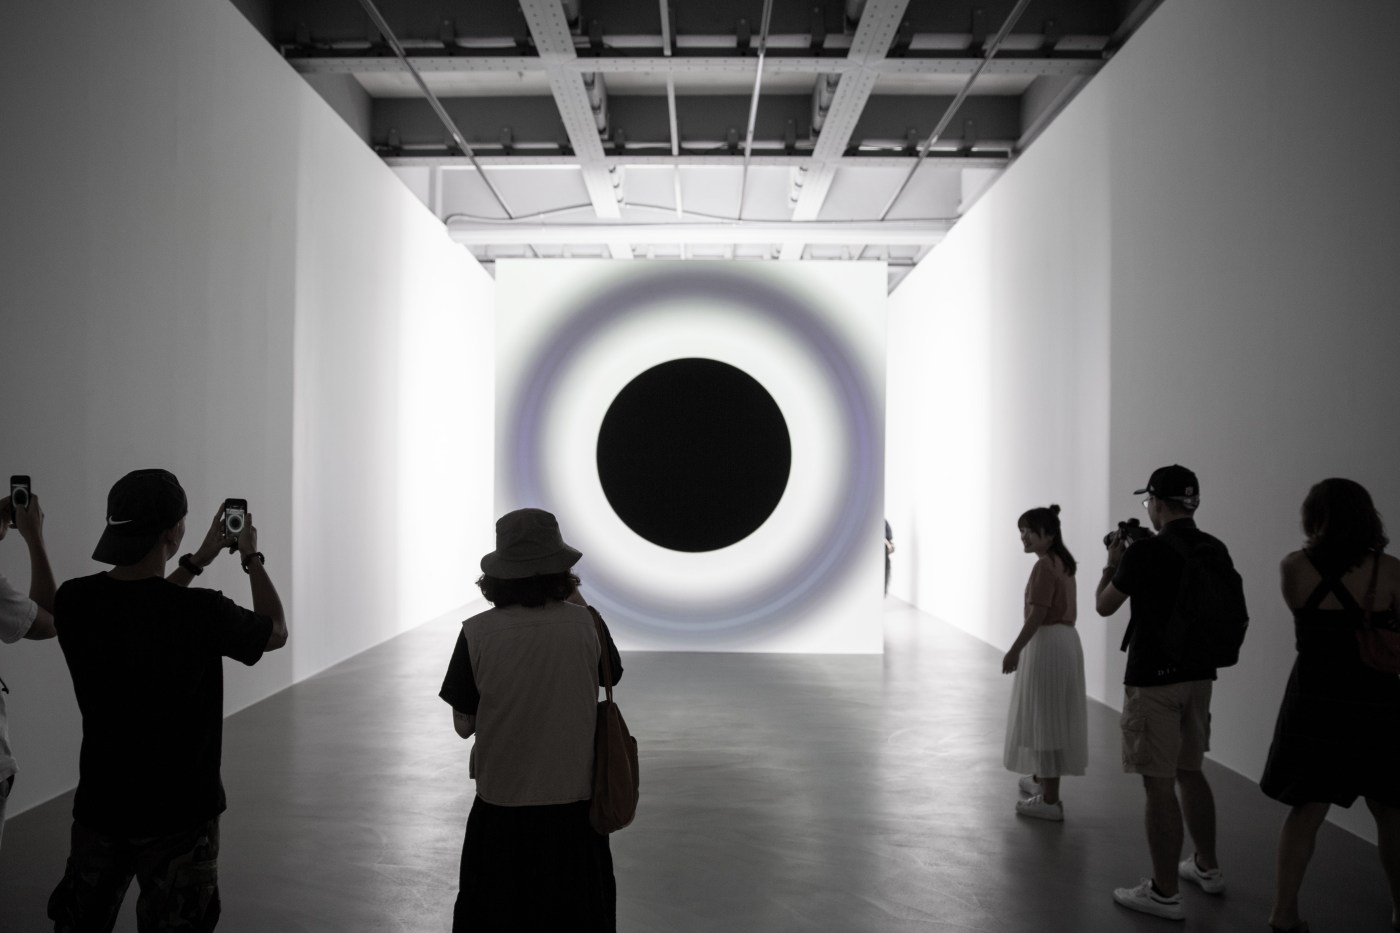 07_point of no return, Installation View, Ryoji Ikeda Solo Exhibition at Taipei Fine Arts Museum (TFAM) ©TFAM